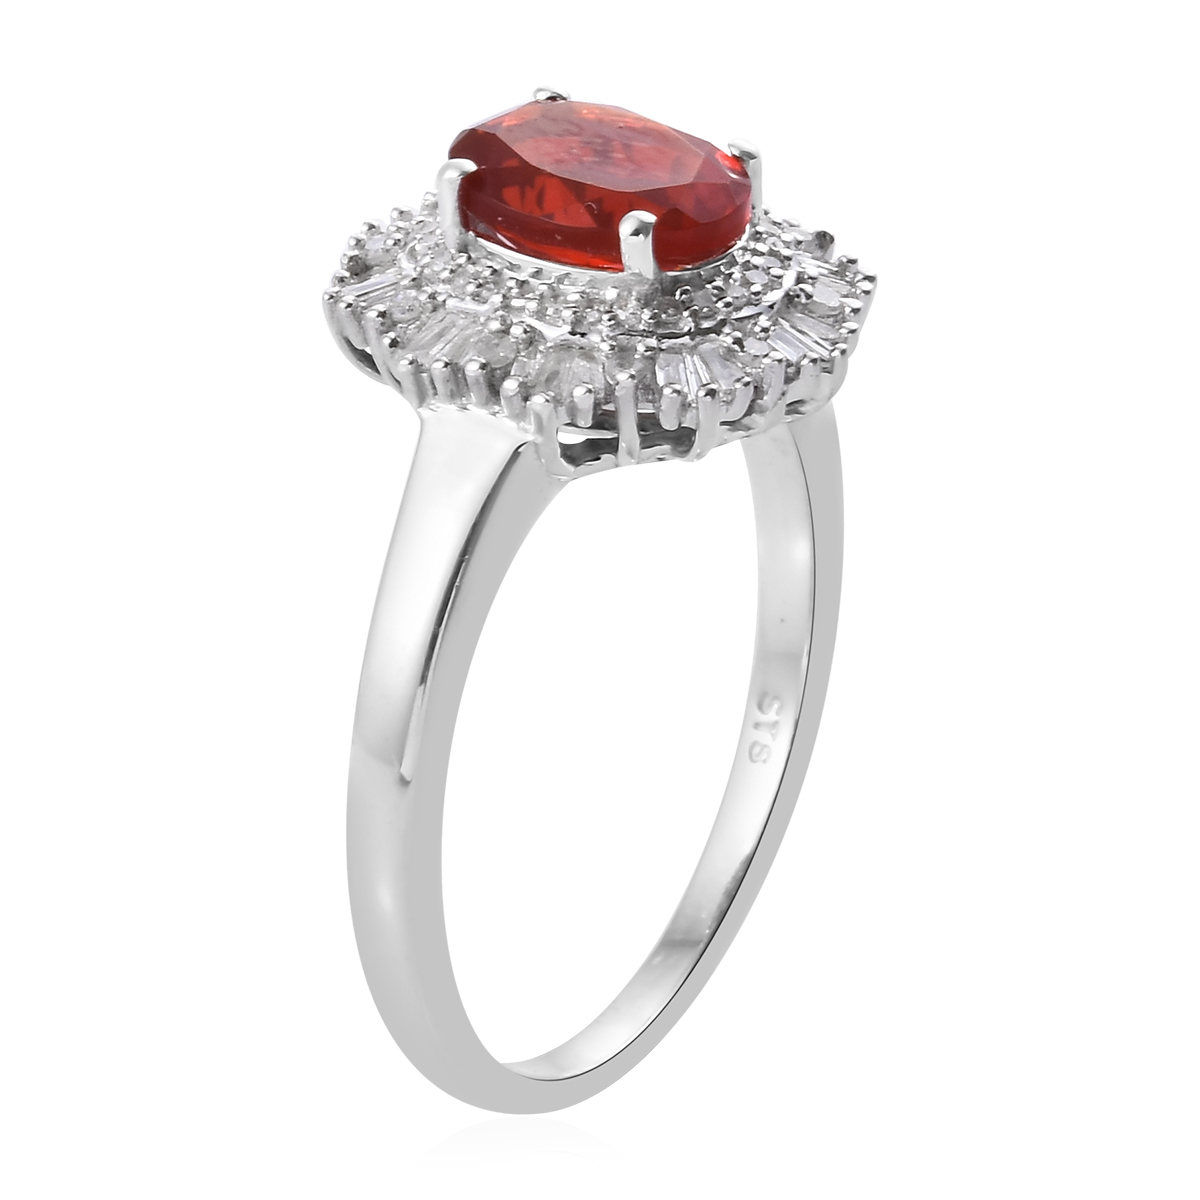 Cherry Fire Opal, Diamond (0.43 ct) Halo Ring in Platinum Over Sterling Silver (Size 8.0) 1.63 ctw